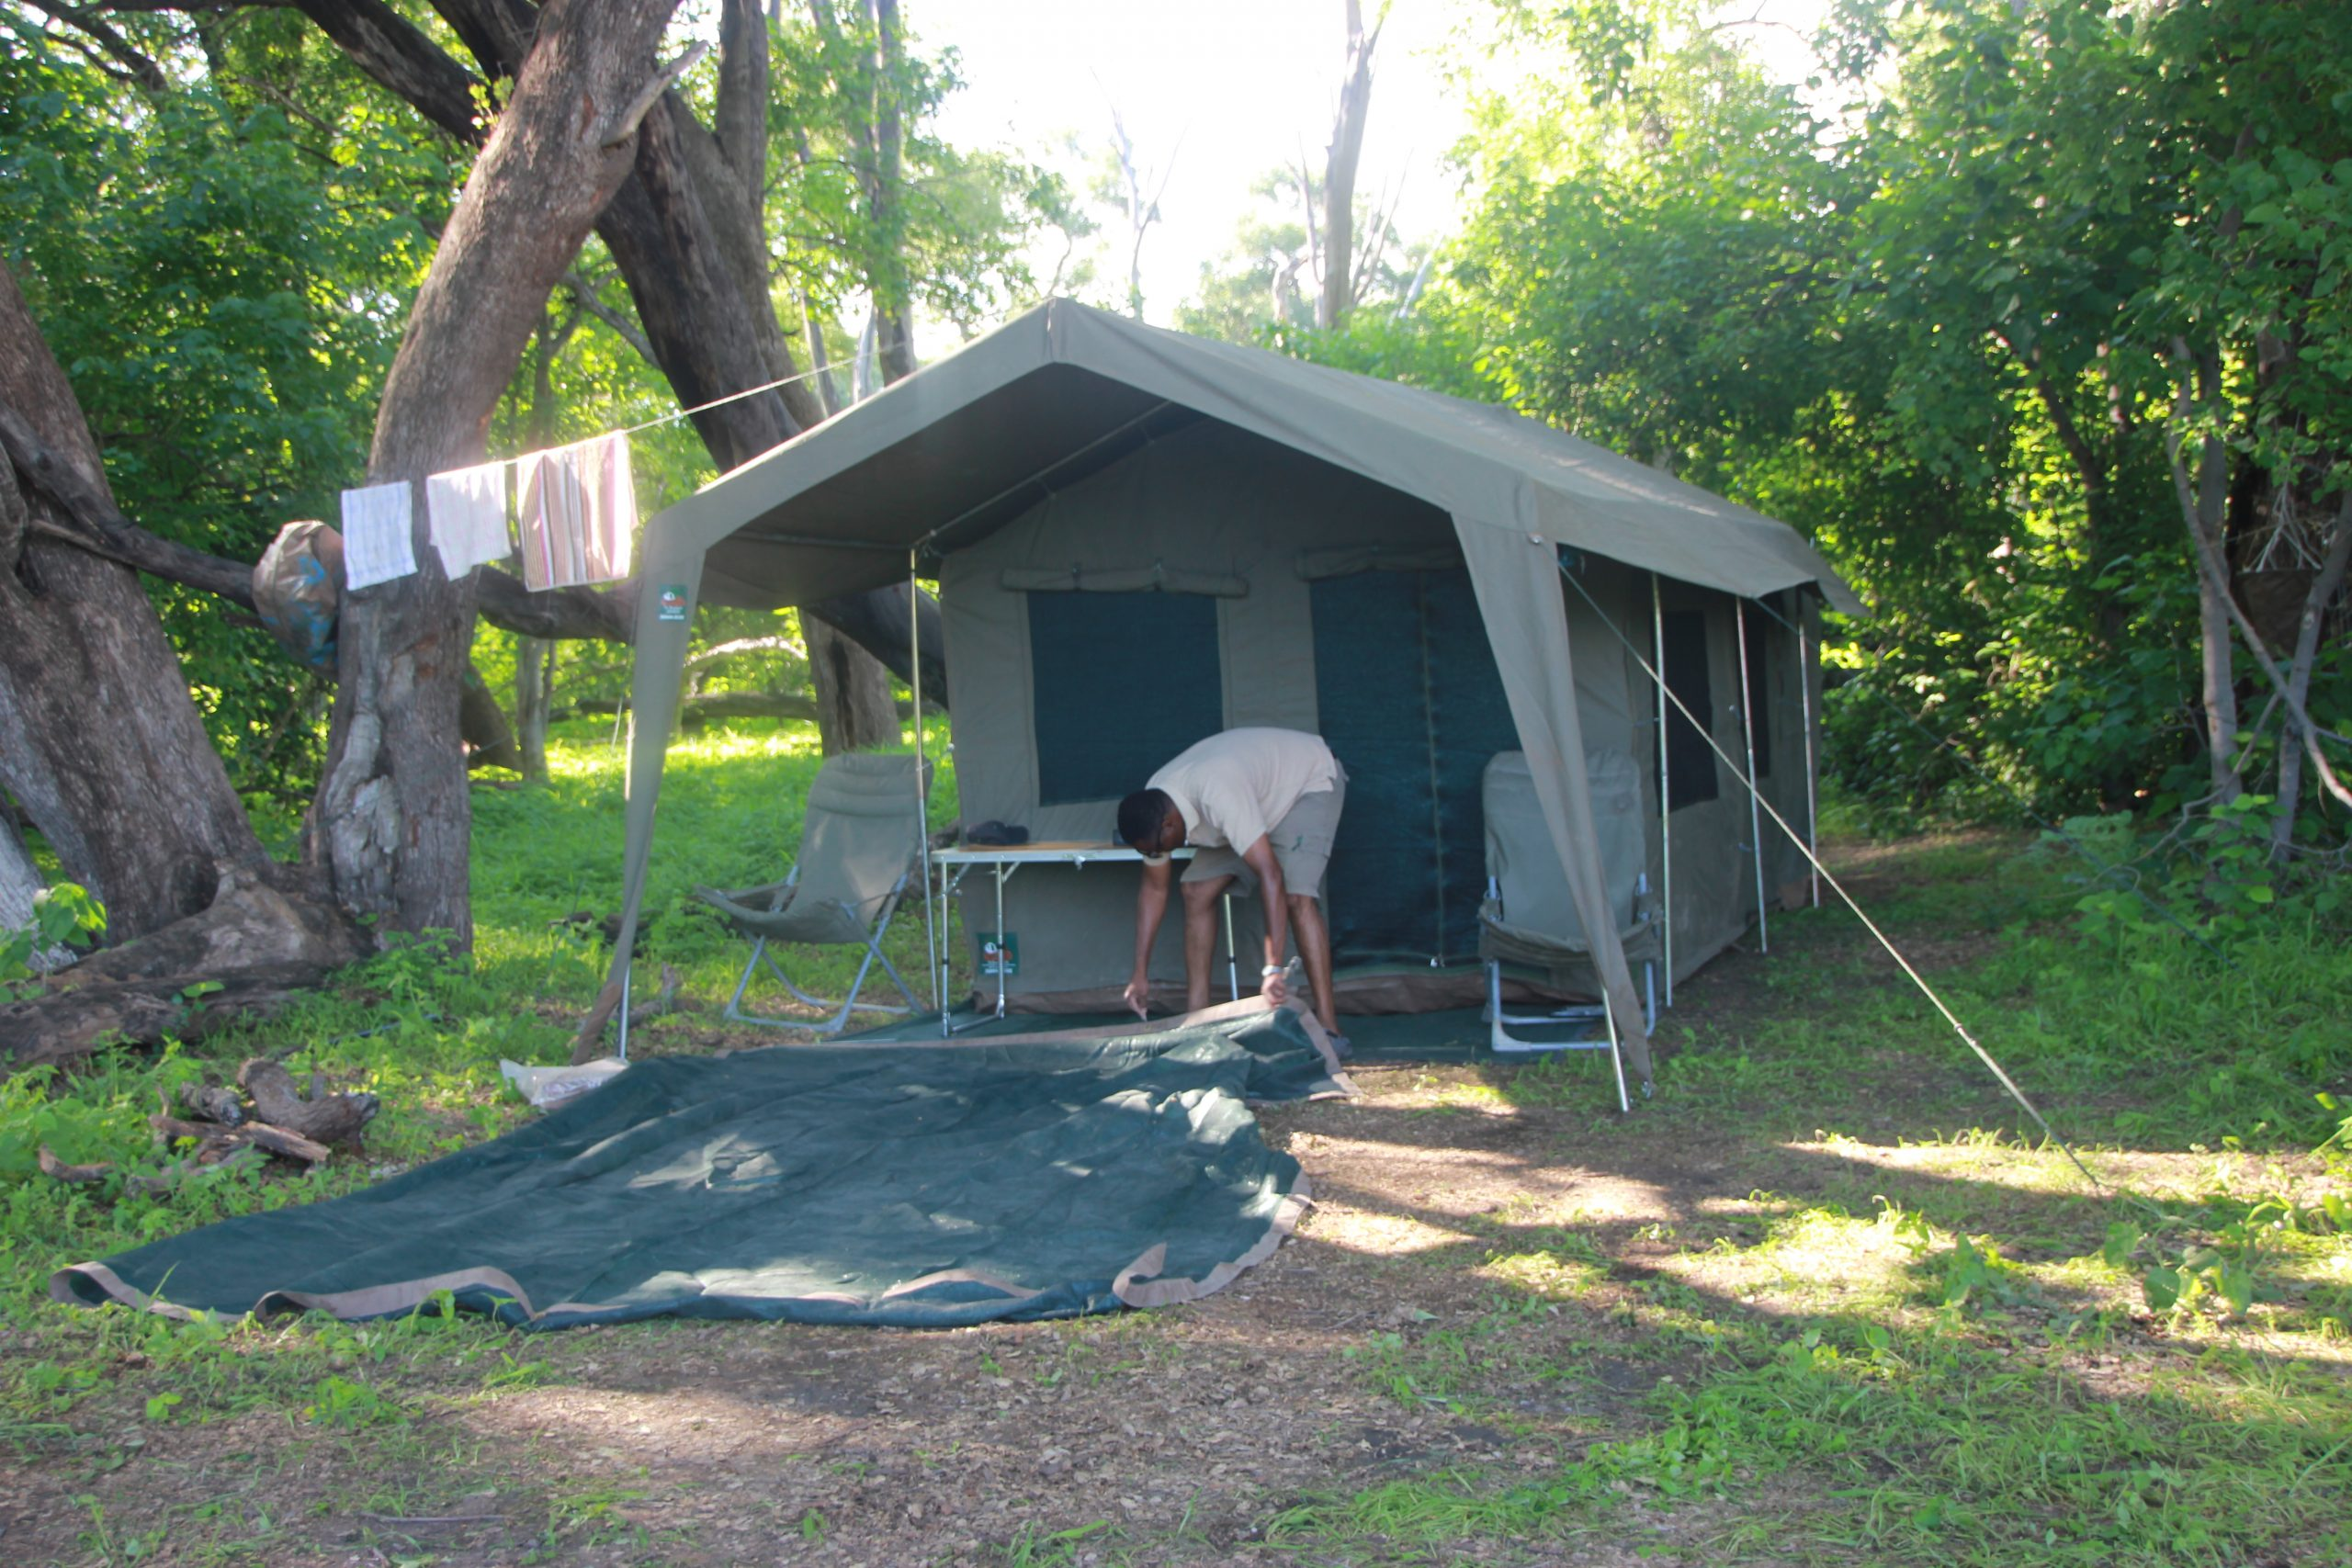 En-suite-Luxury tent being pitched for a very comfortable; home like camping, fitted with singe or double beds and other luxuries.